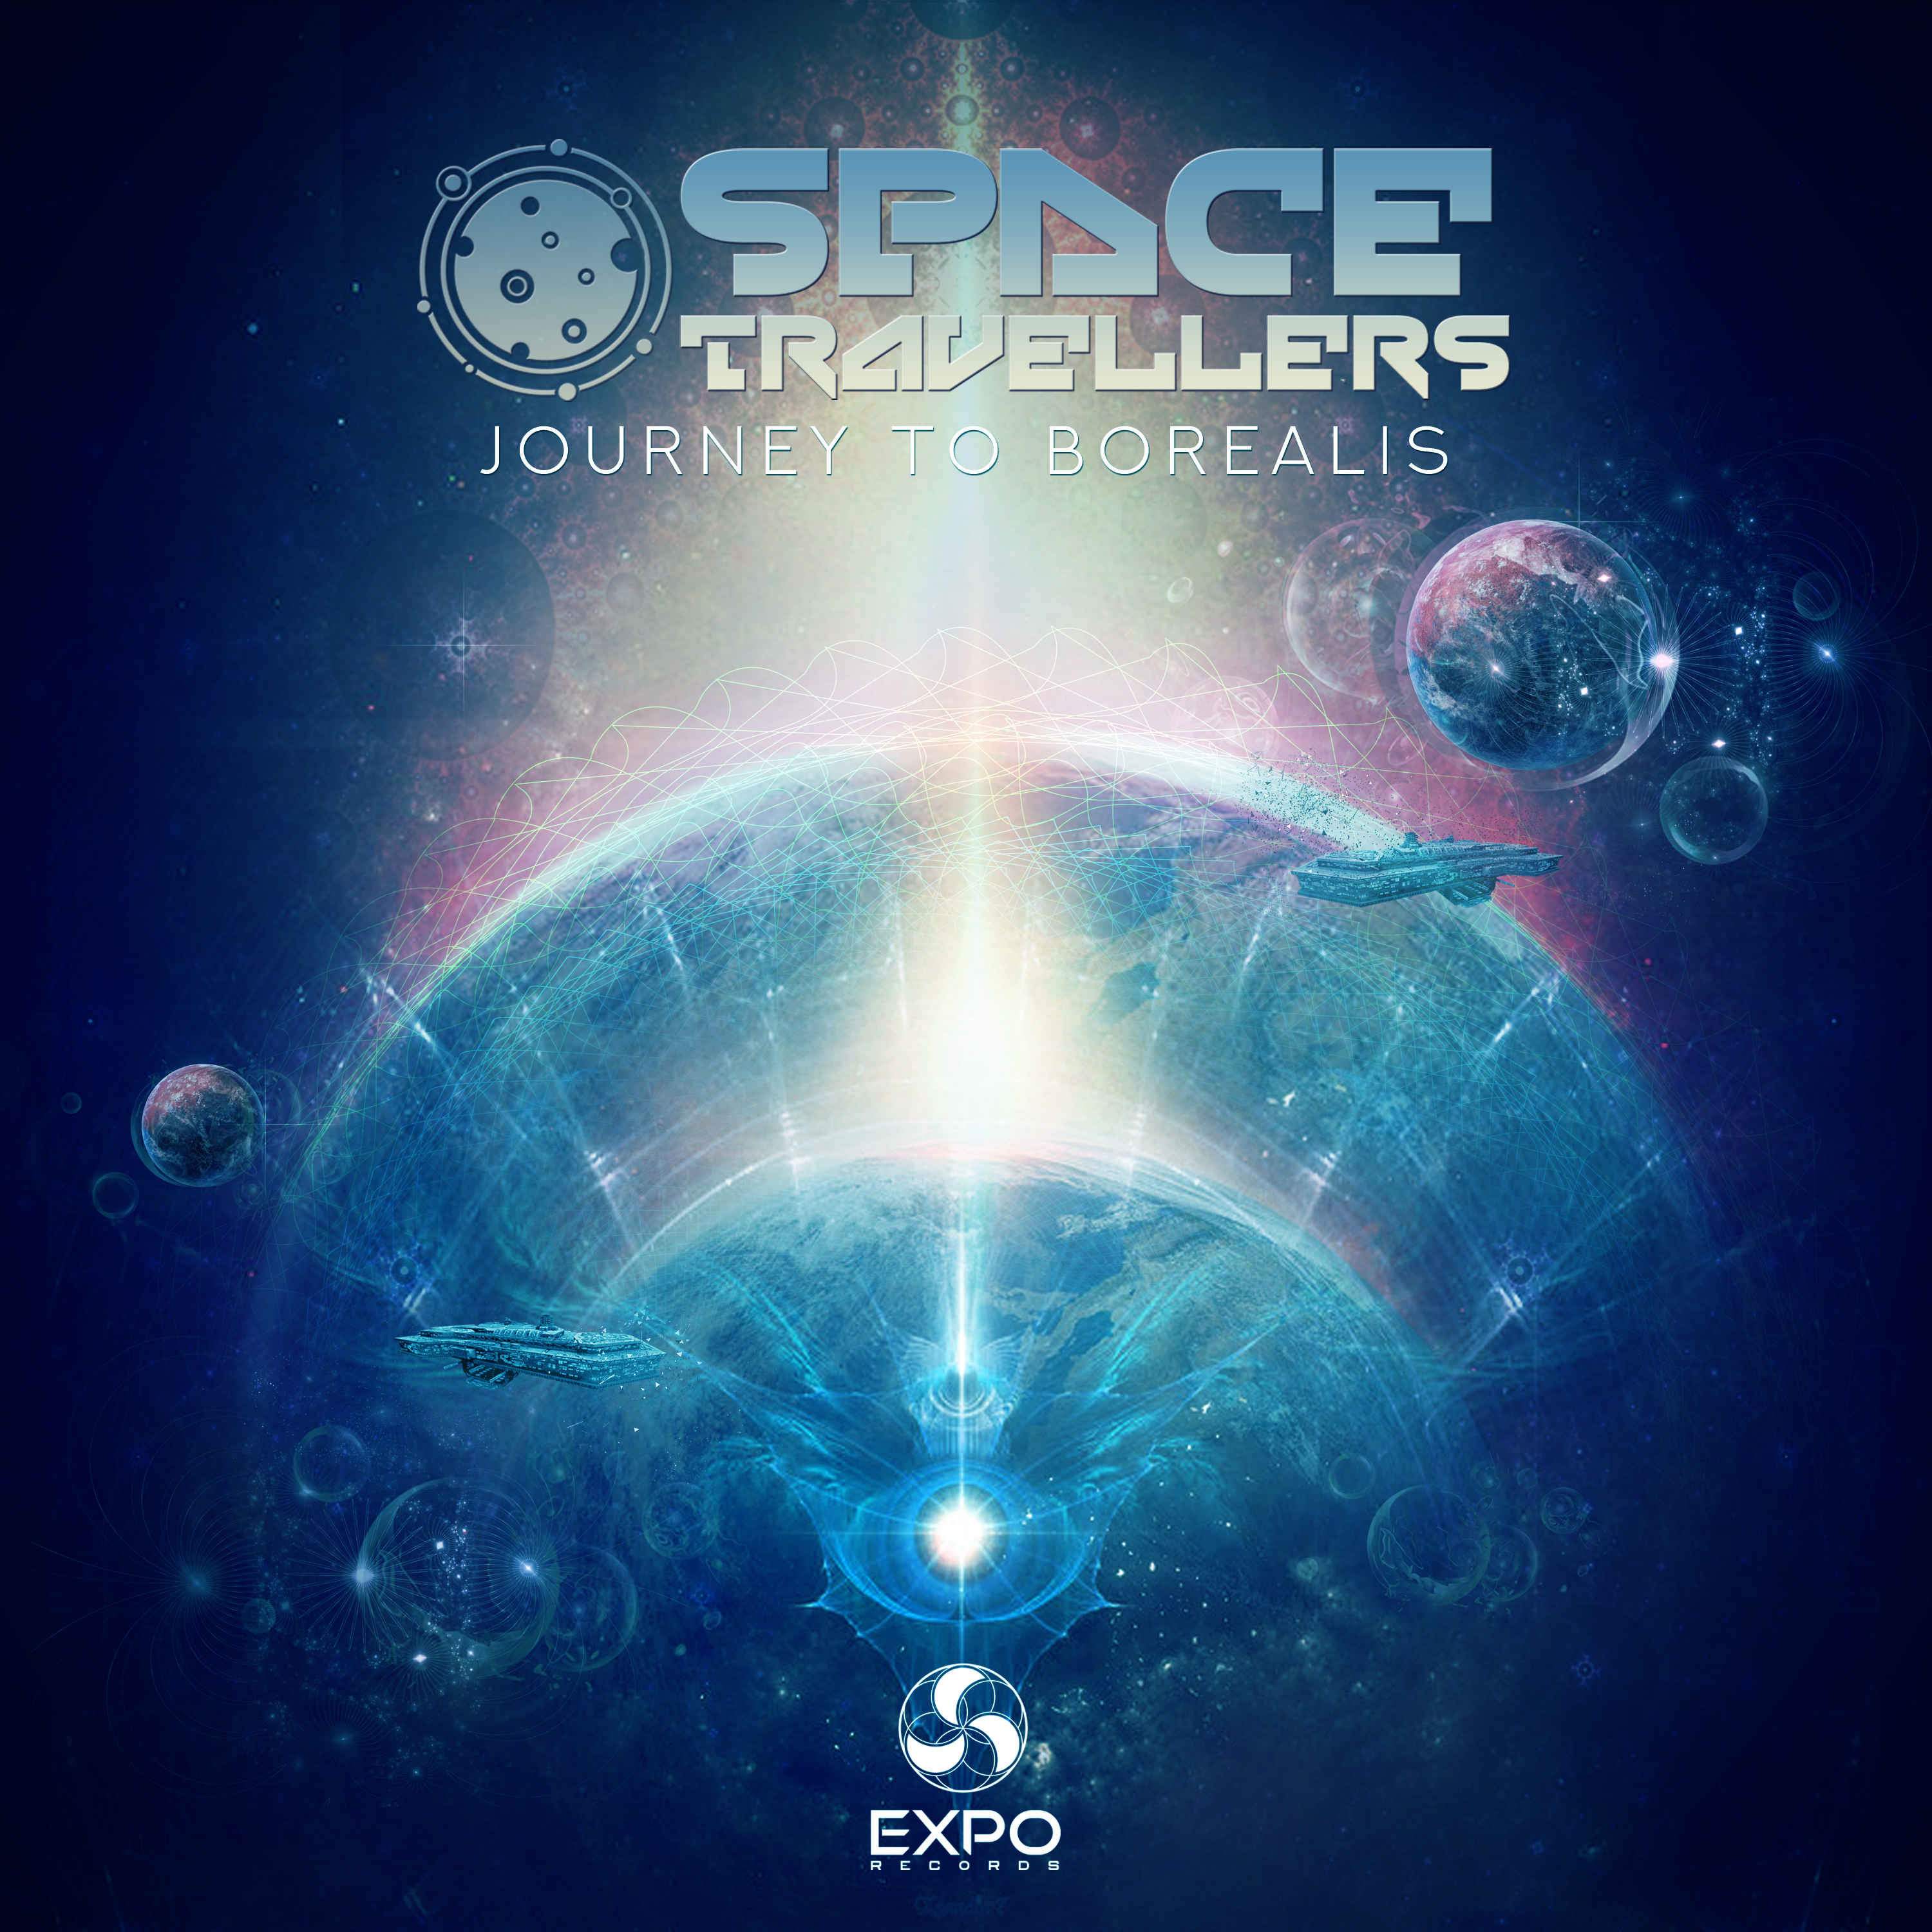 Space Travellers - Journey to borealis